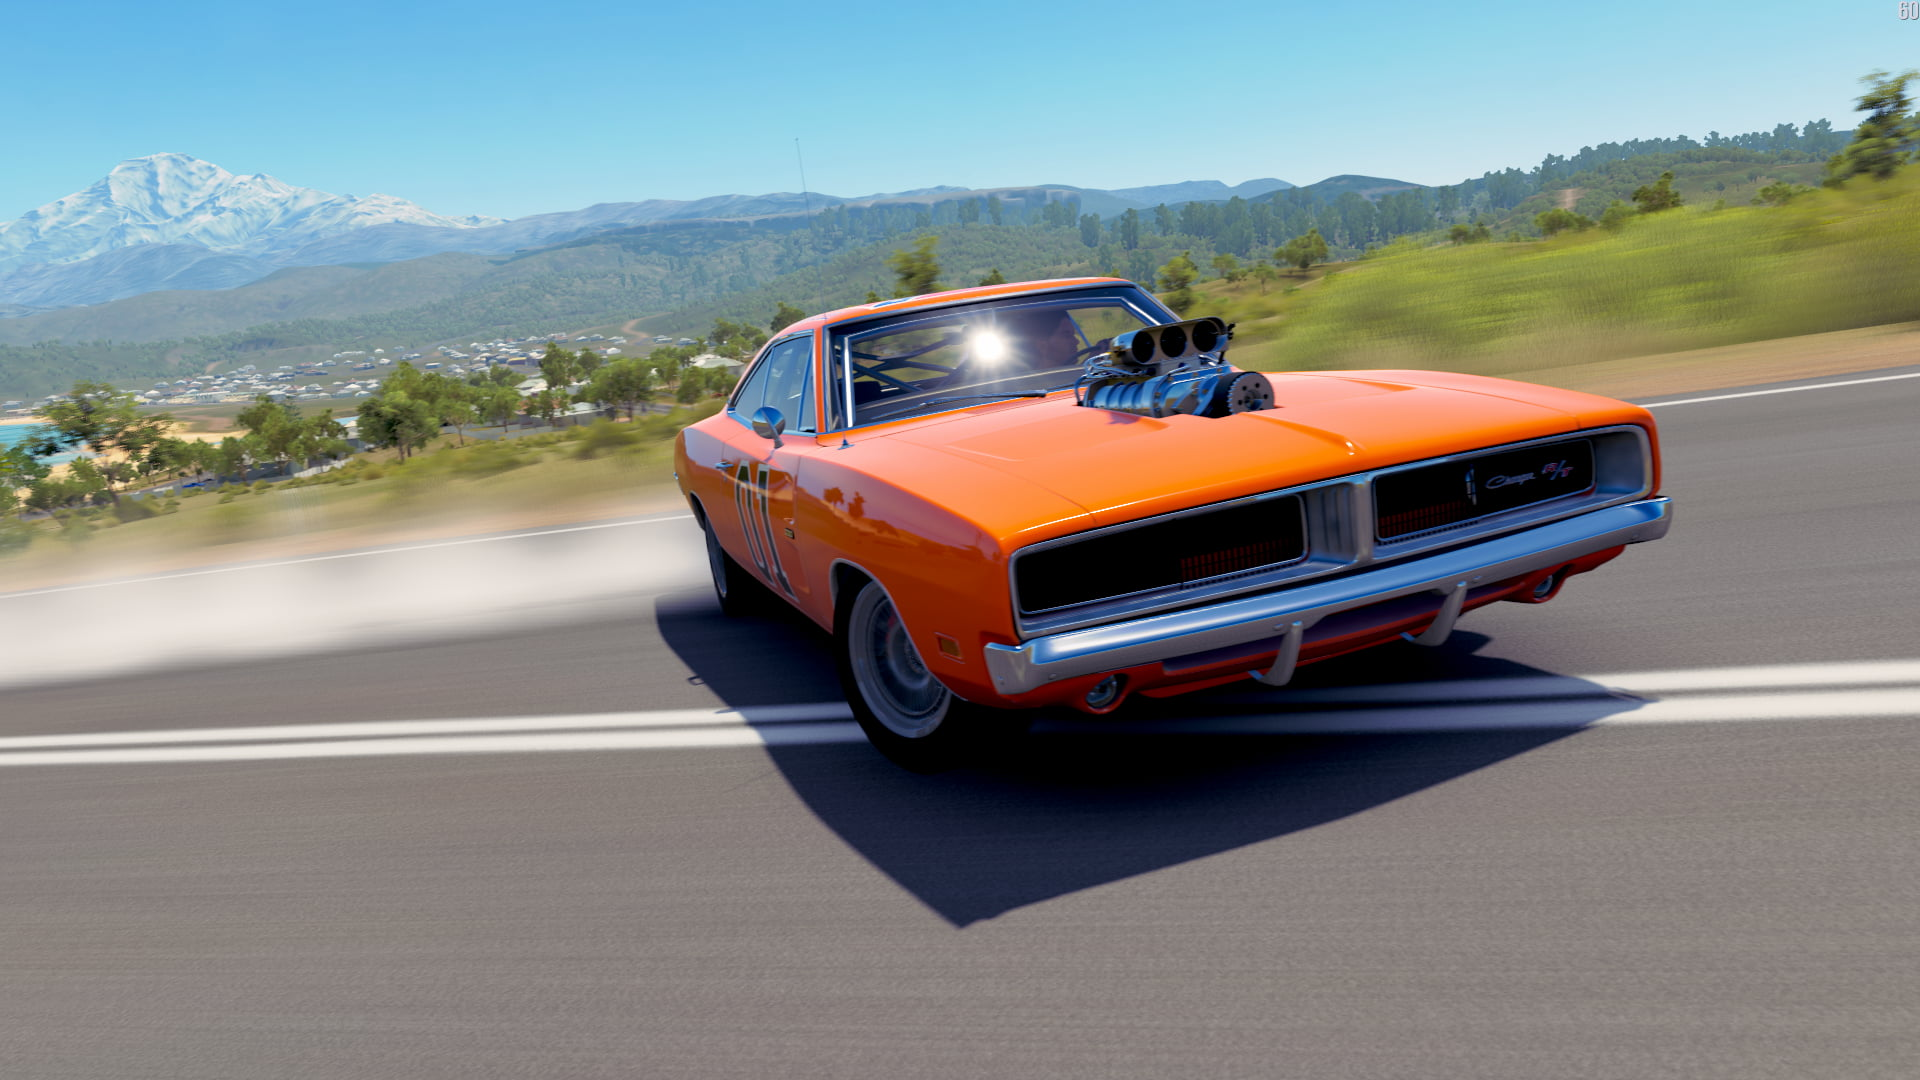 Orange Muscle Car Dodge Charger 1969 R T Wallpaper Hd